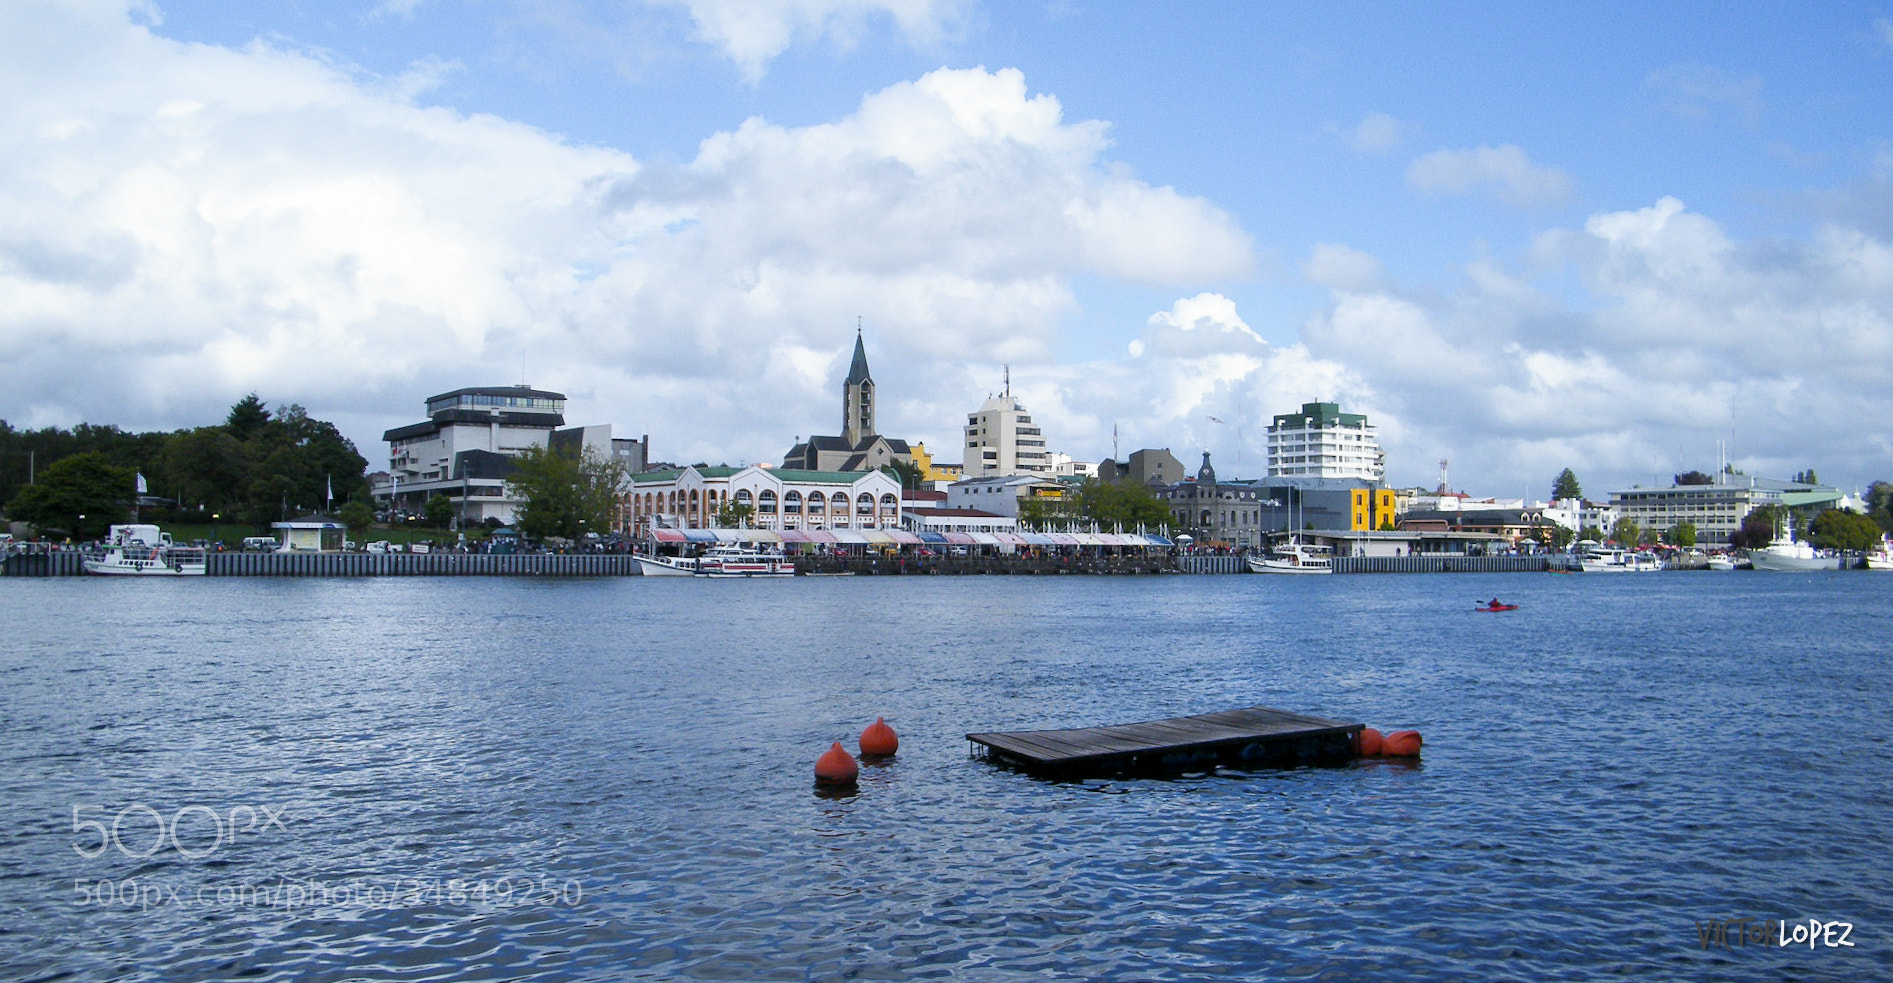 Photograph Valdivia by Victor Lopez on 500px